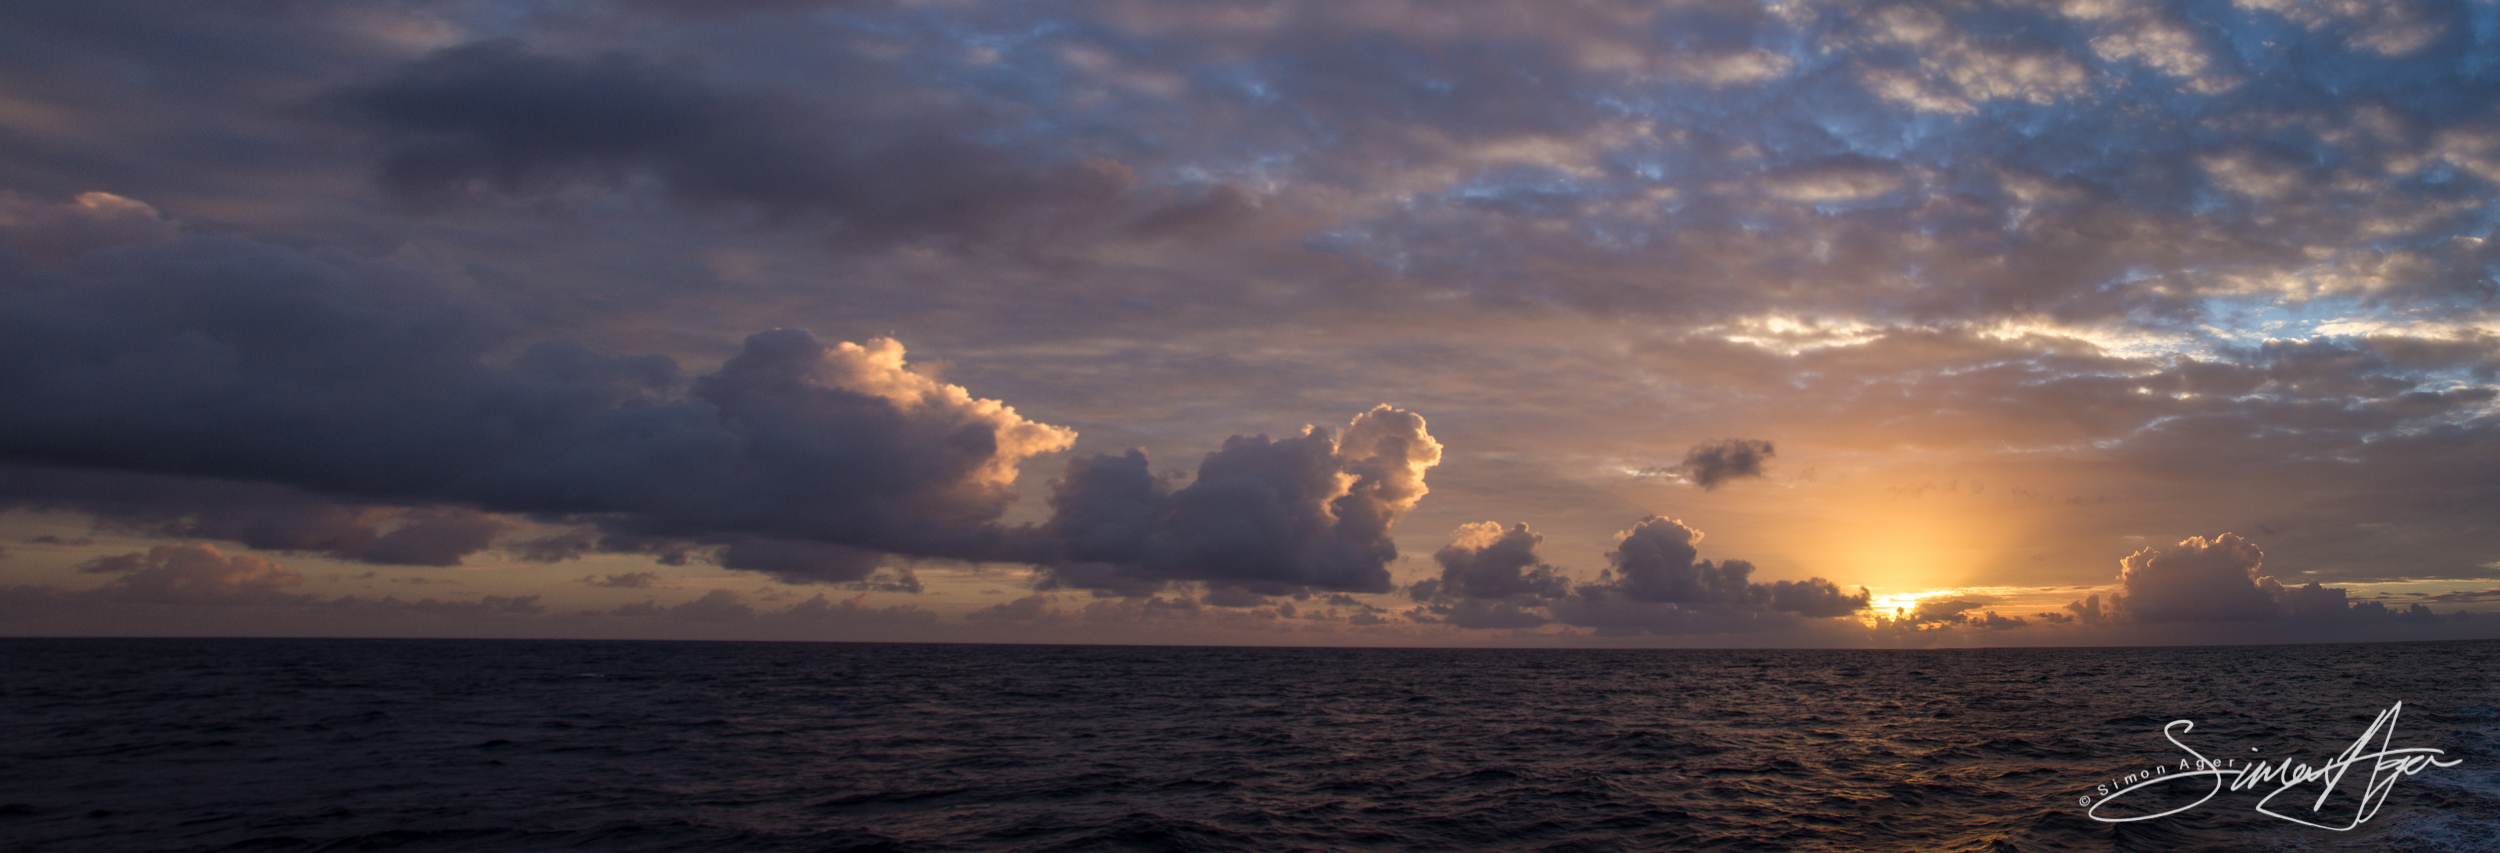 120824_SA_Sunset_in_Pheonix_Islands_0796.jpg